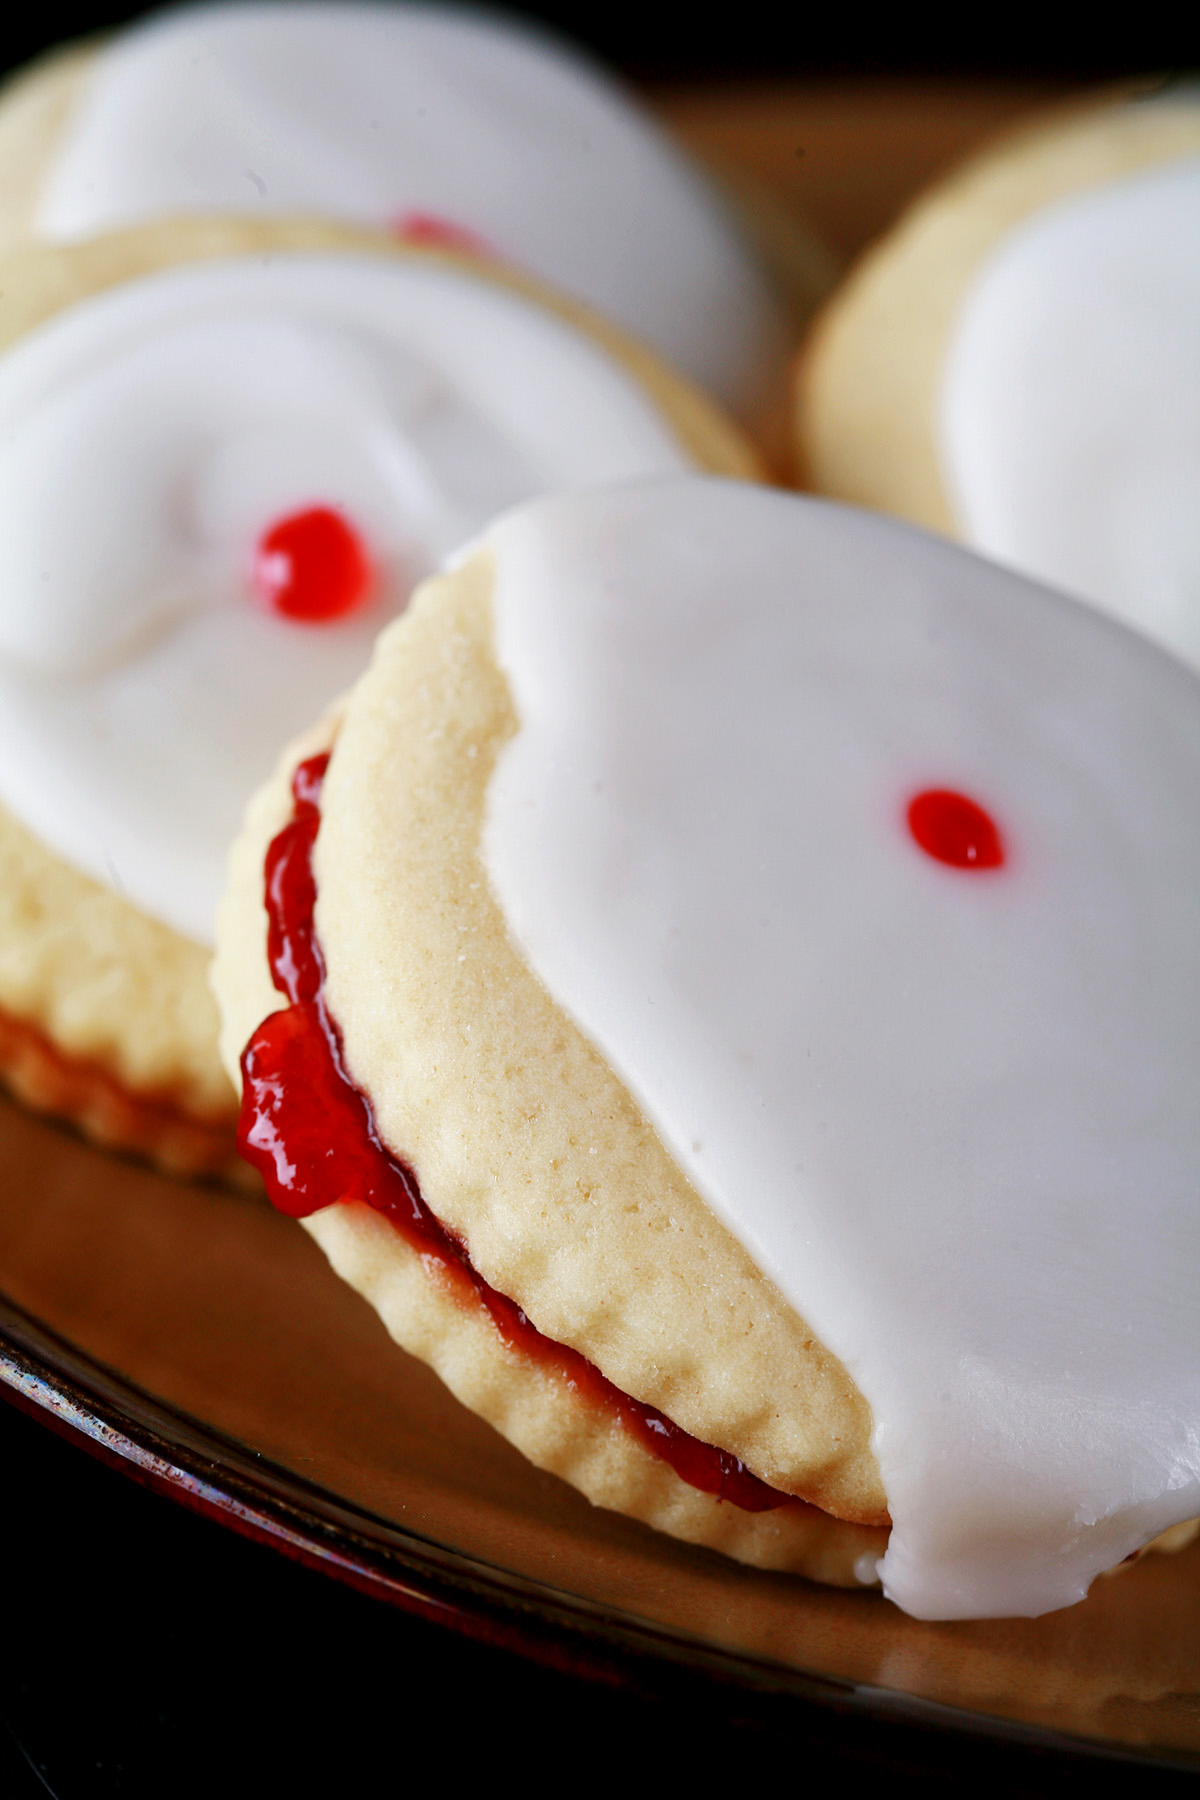 Close up view of a plate of gluten-free imperial cookies: Sandwich cookies filled with raspberry jam, frosted with a white glaze, and finished off with a dot of red gel in the center.